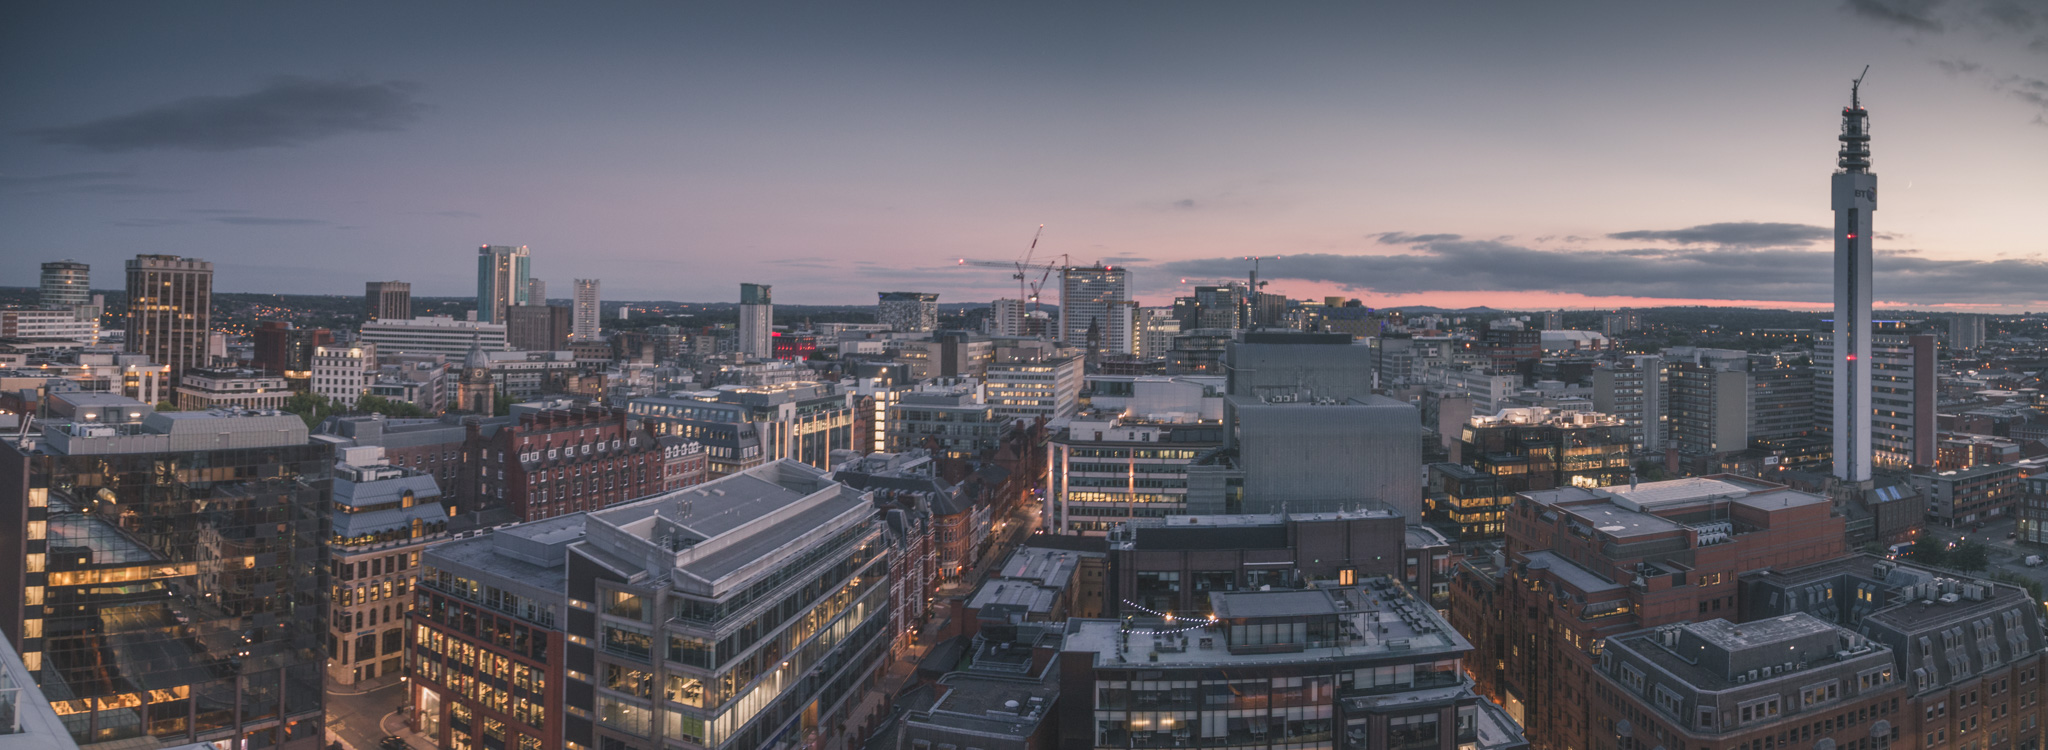 The view from the top floor of the new Three Snowhill development